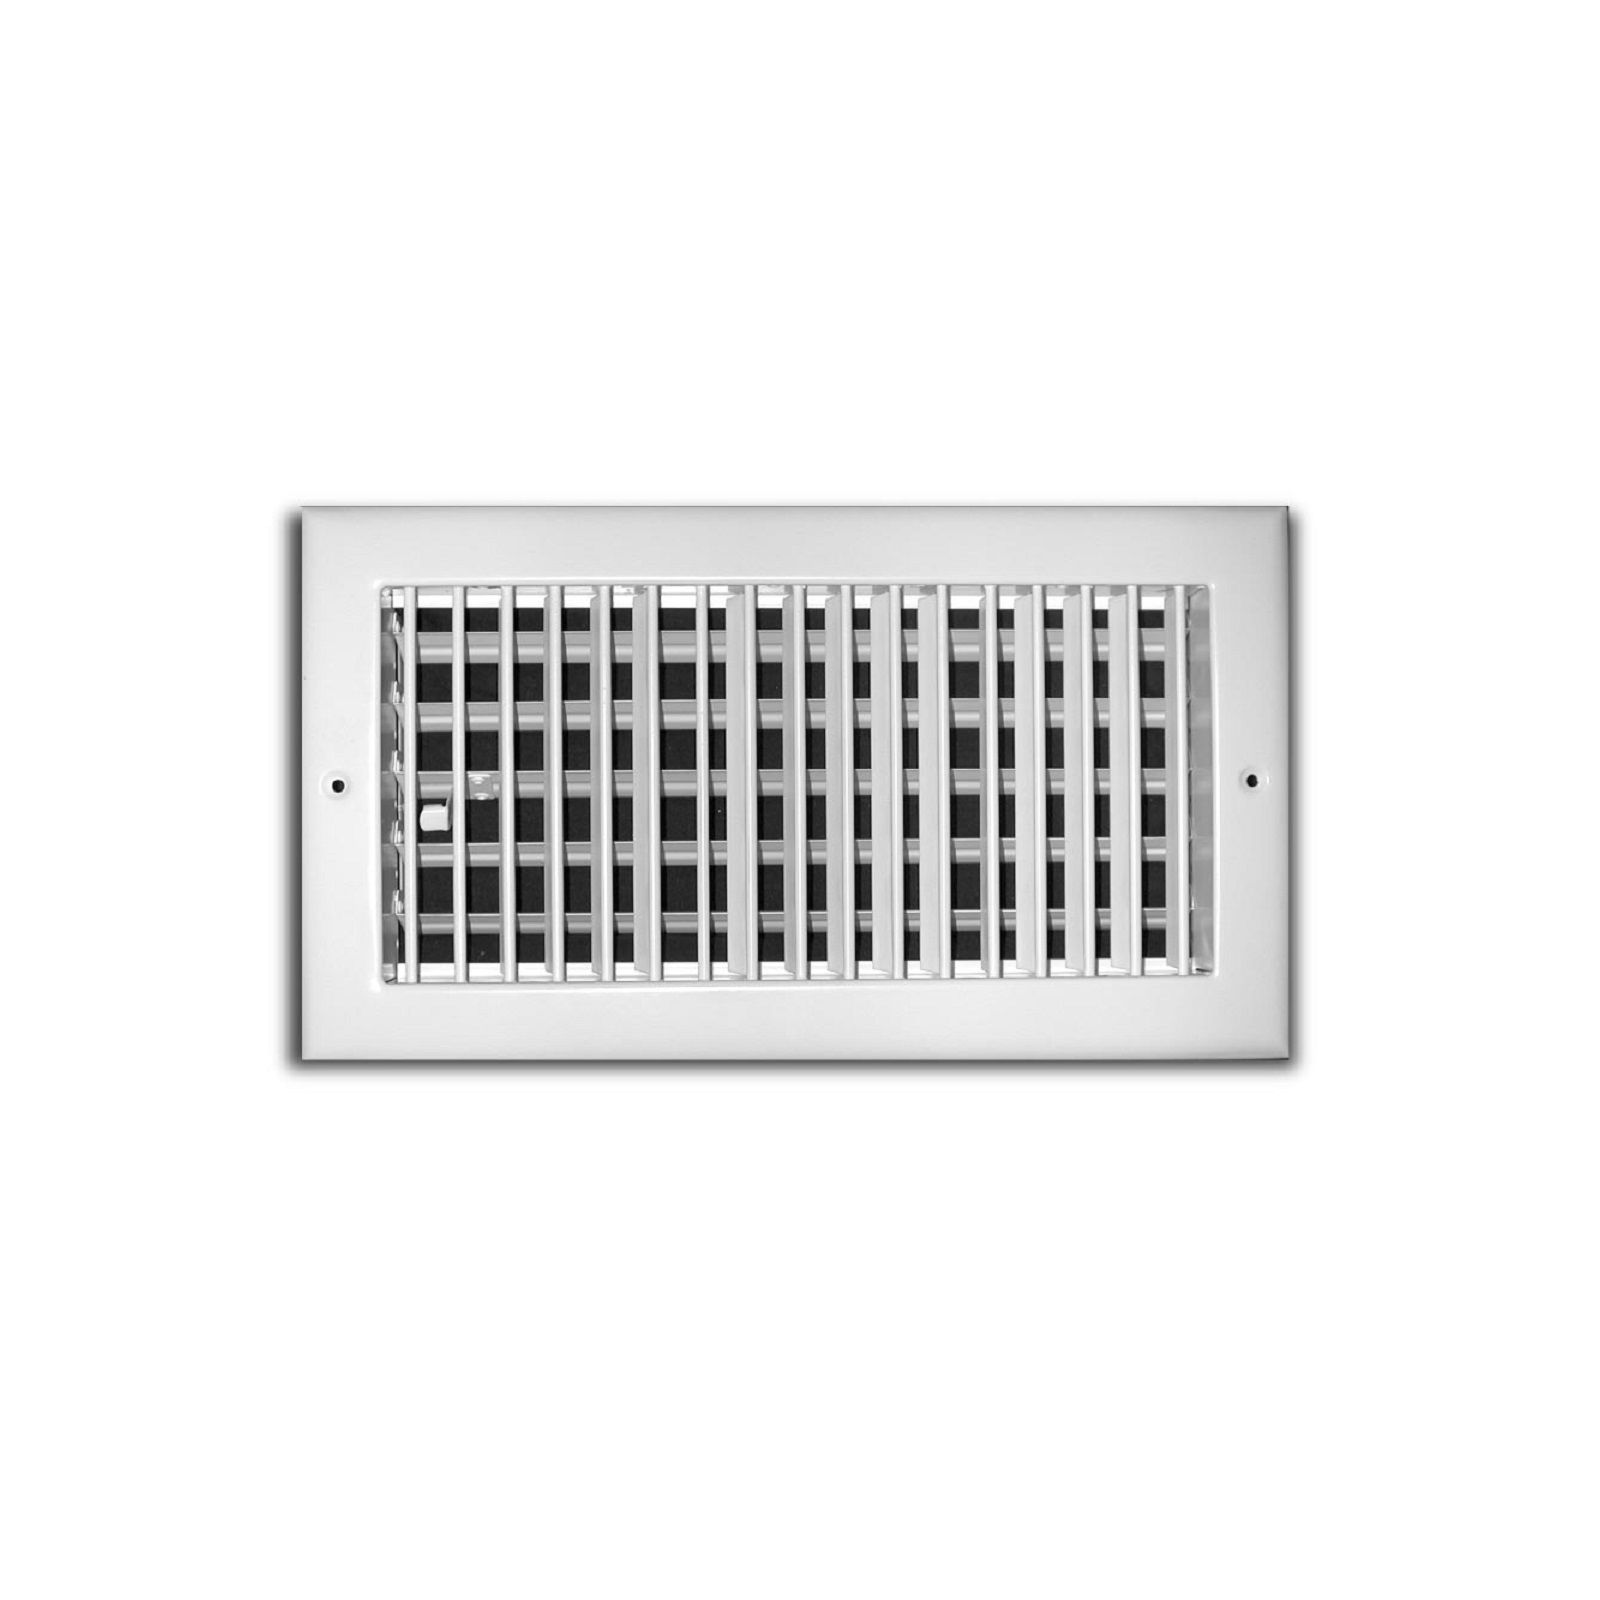 "TRUaire 210VM 24X04 - Steel Adjustable 1-Way Wall/Ceiling Register With Multi Shutter Damper, White, 24"" X 04"""